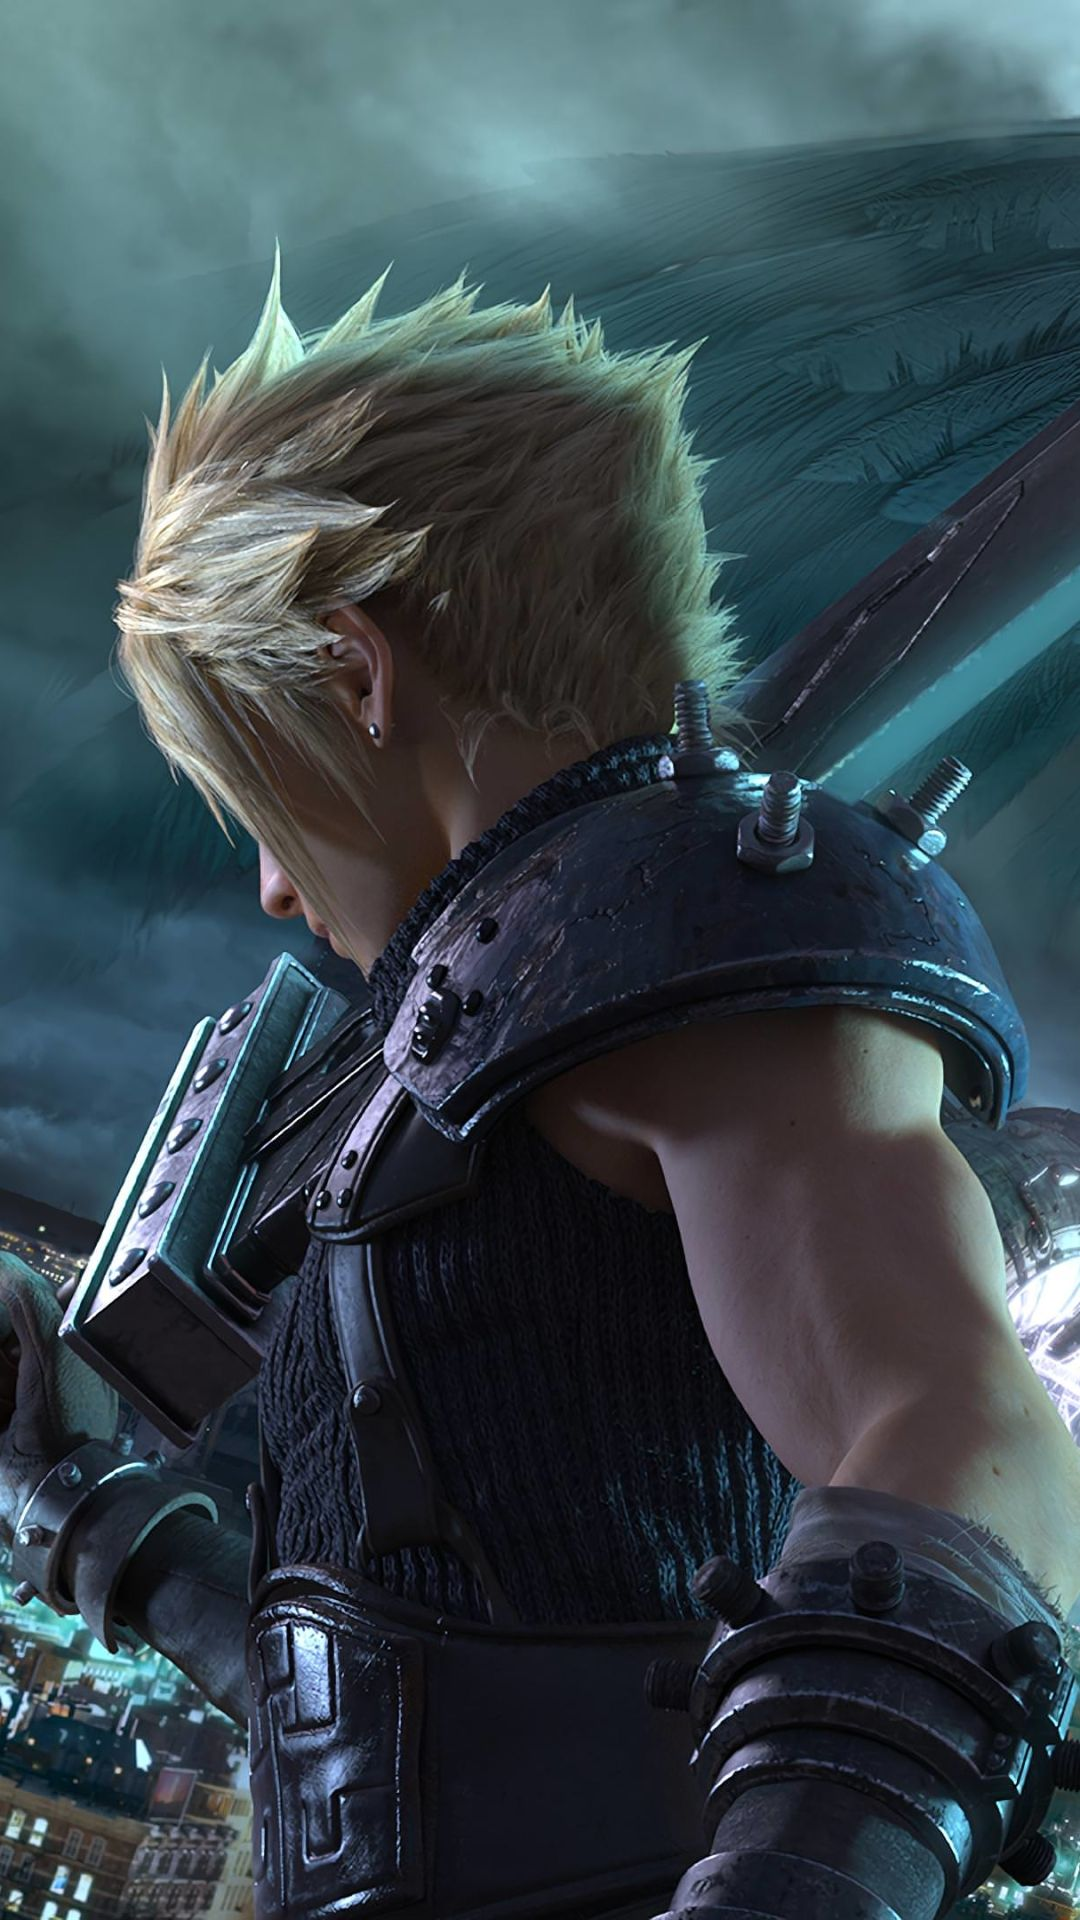 Final Fantasy Wallpaper Cloud Strife In 2020 With Images Final